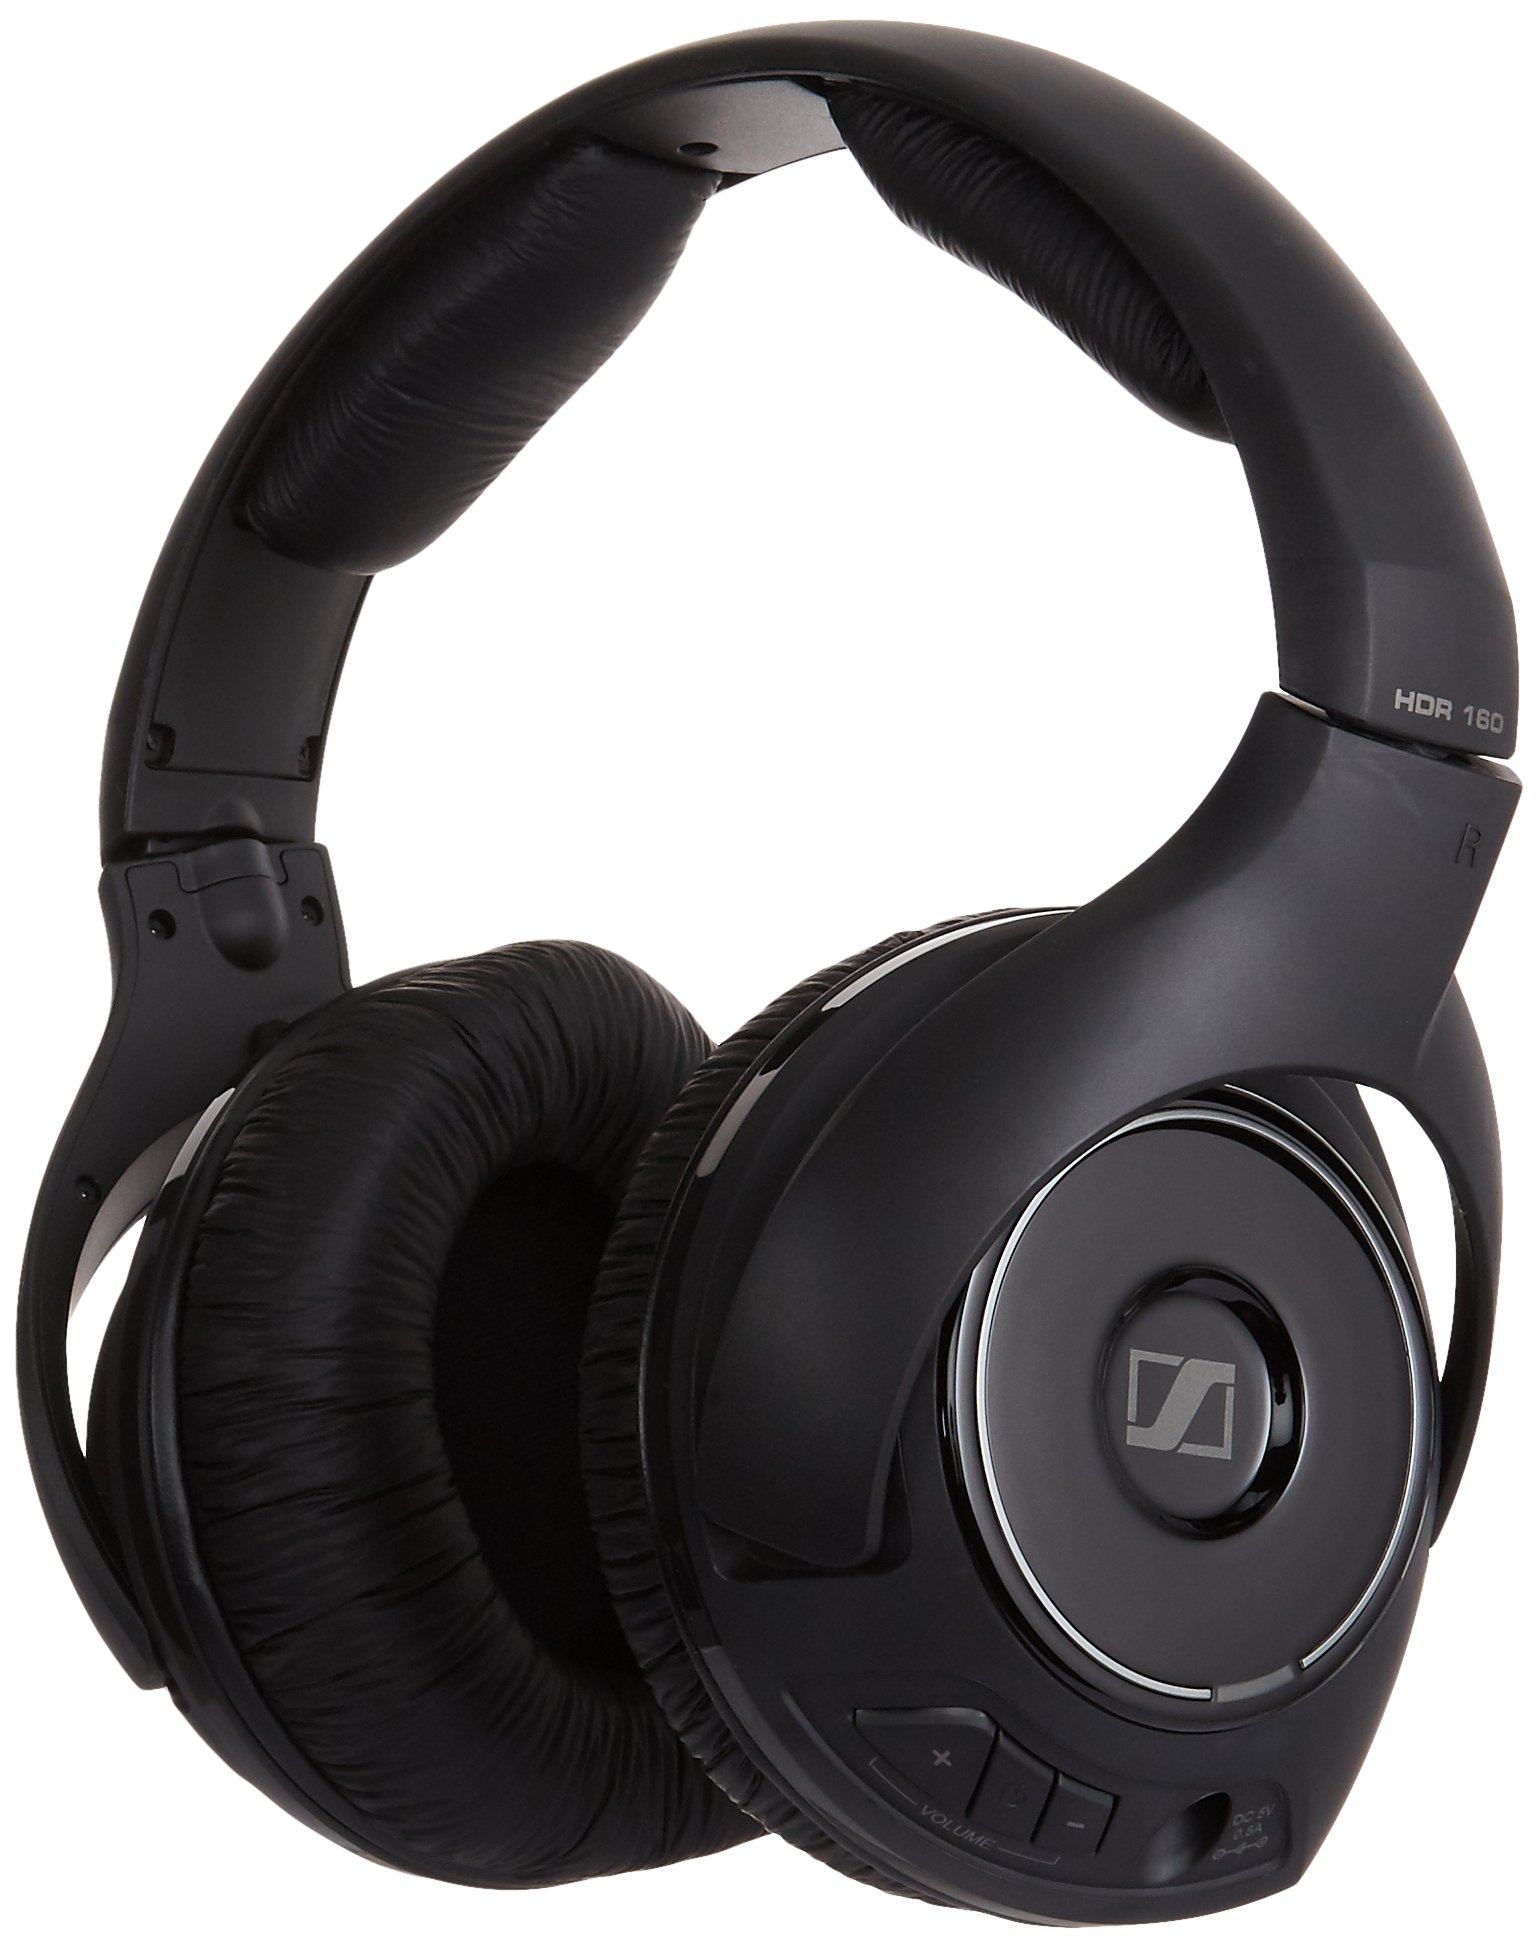 Auriculares Sennheiser HDR 160 (Discontinued by Manufacturer)